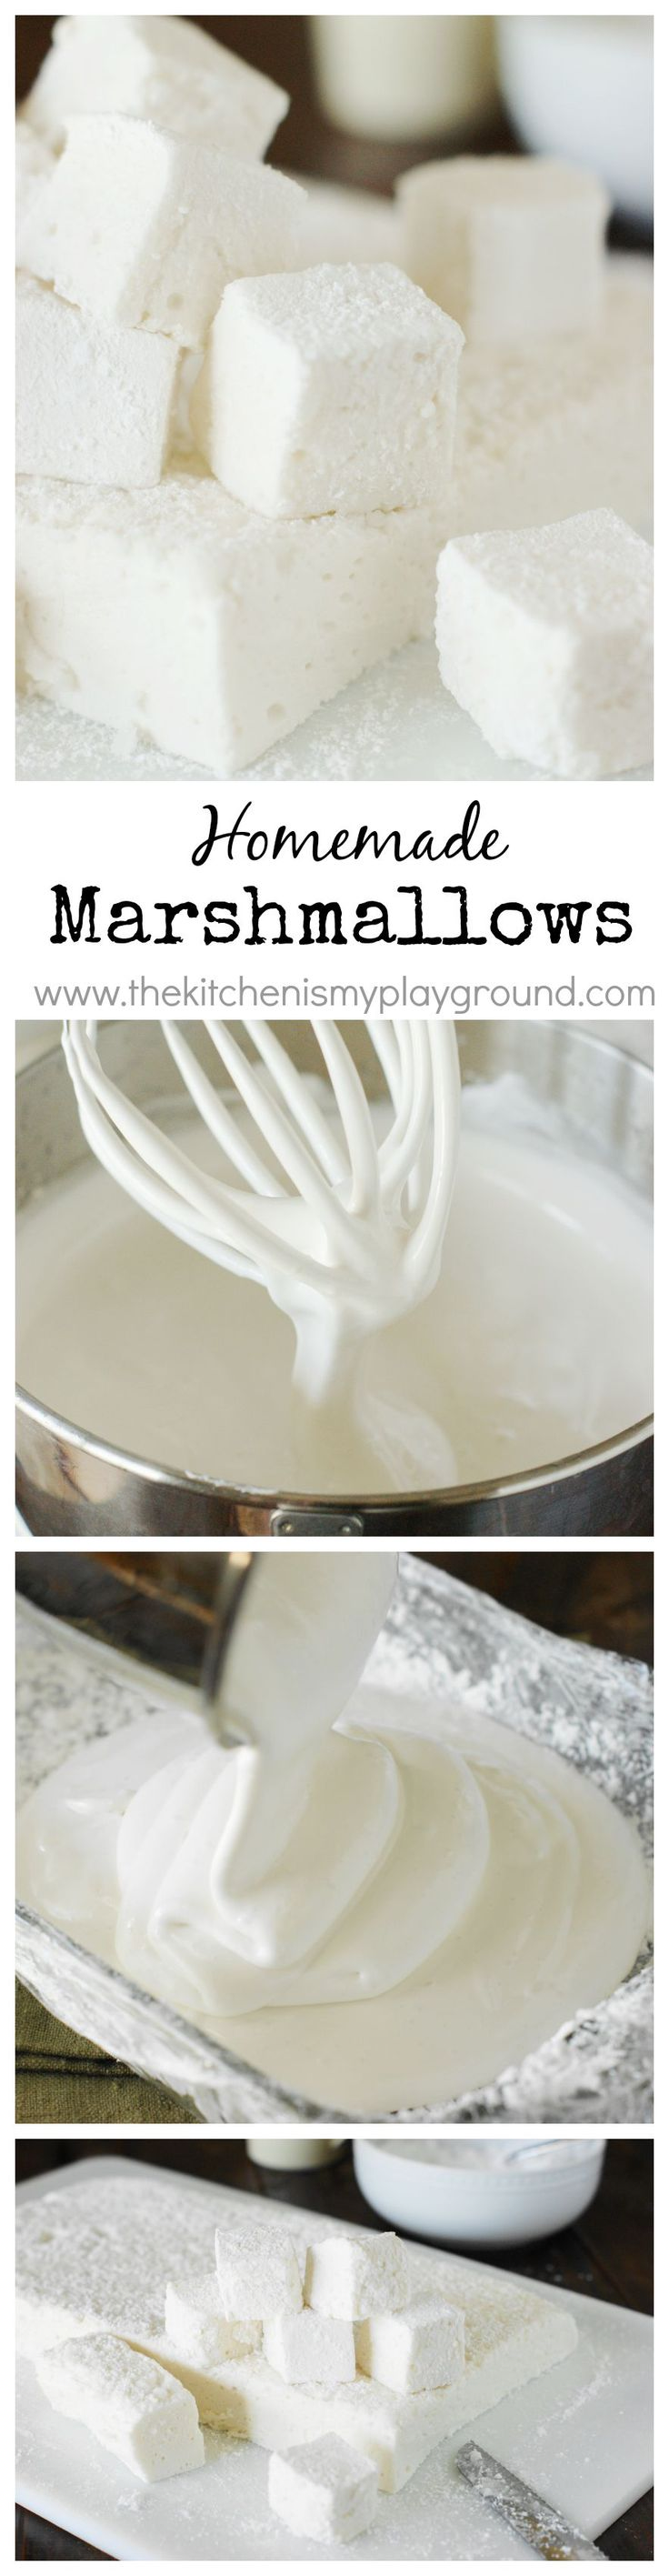 How to Make Homemade Marshmallows ~ they're TOTALLY worth the homemade time & effort!  And perfect for little gift bags.   www.thekitchenismyplayground.com